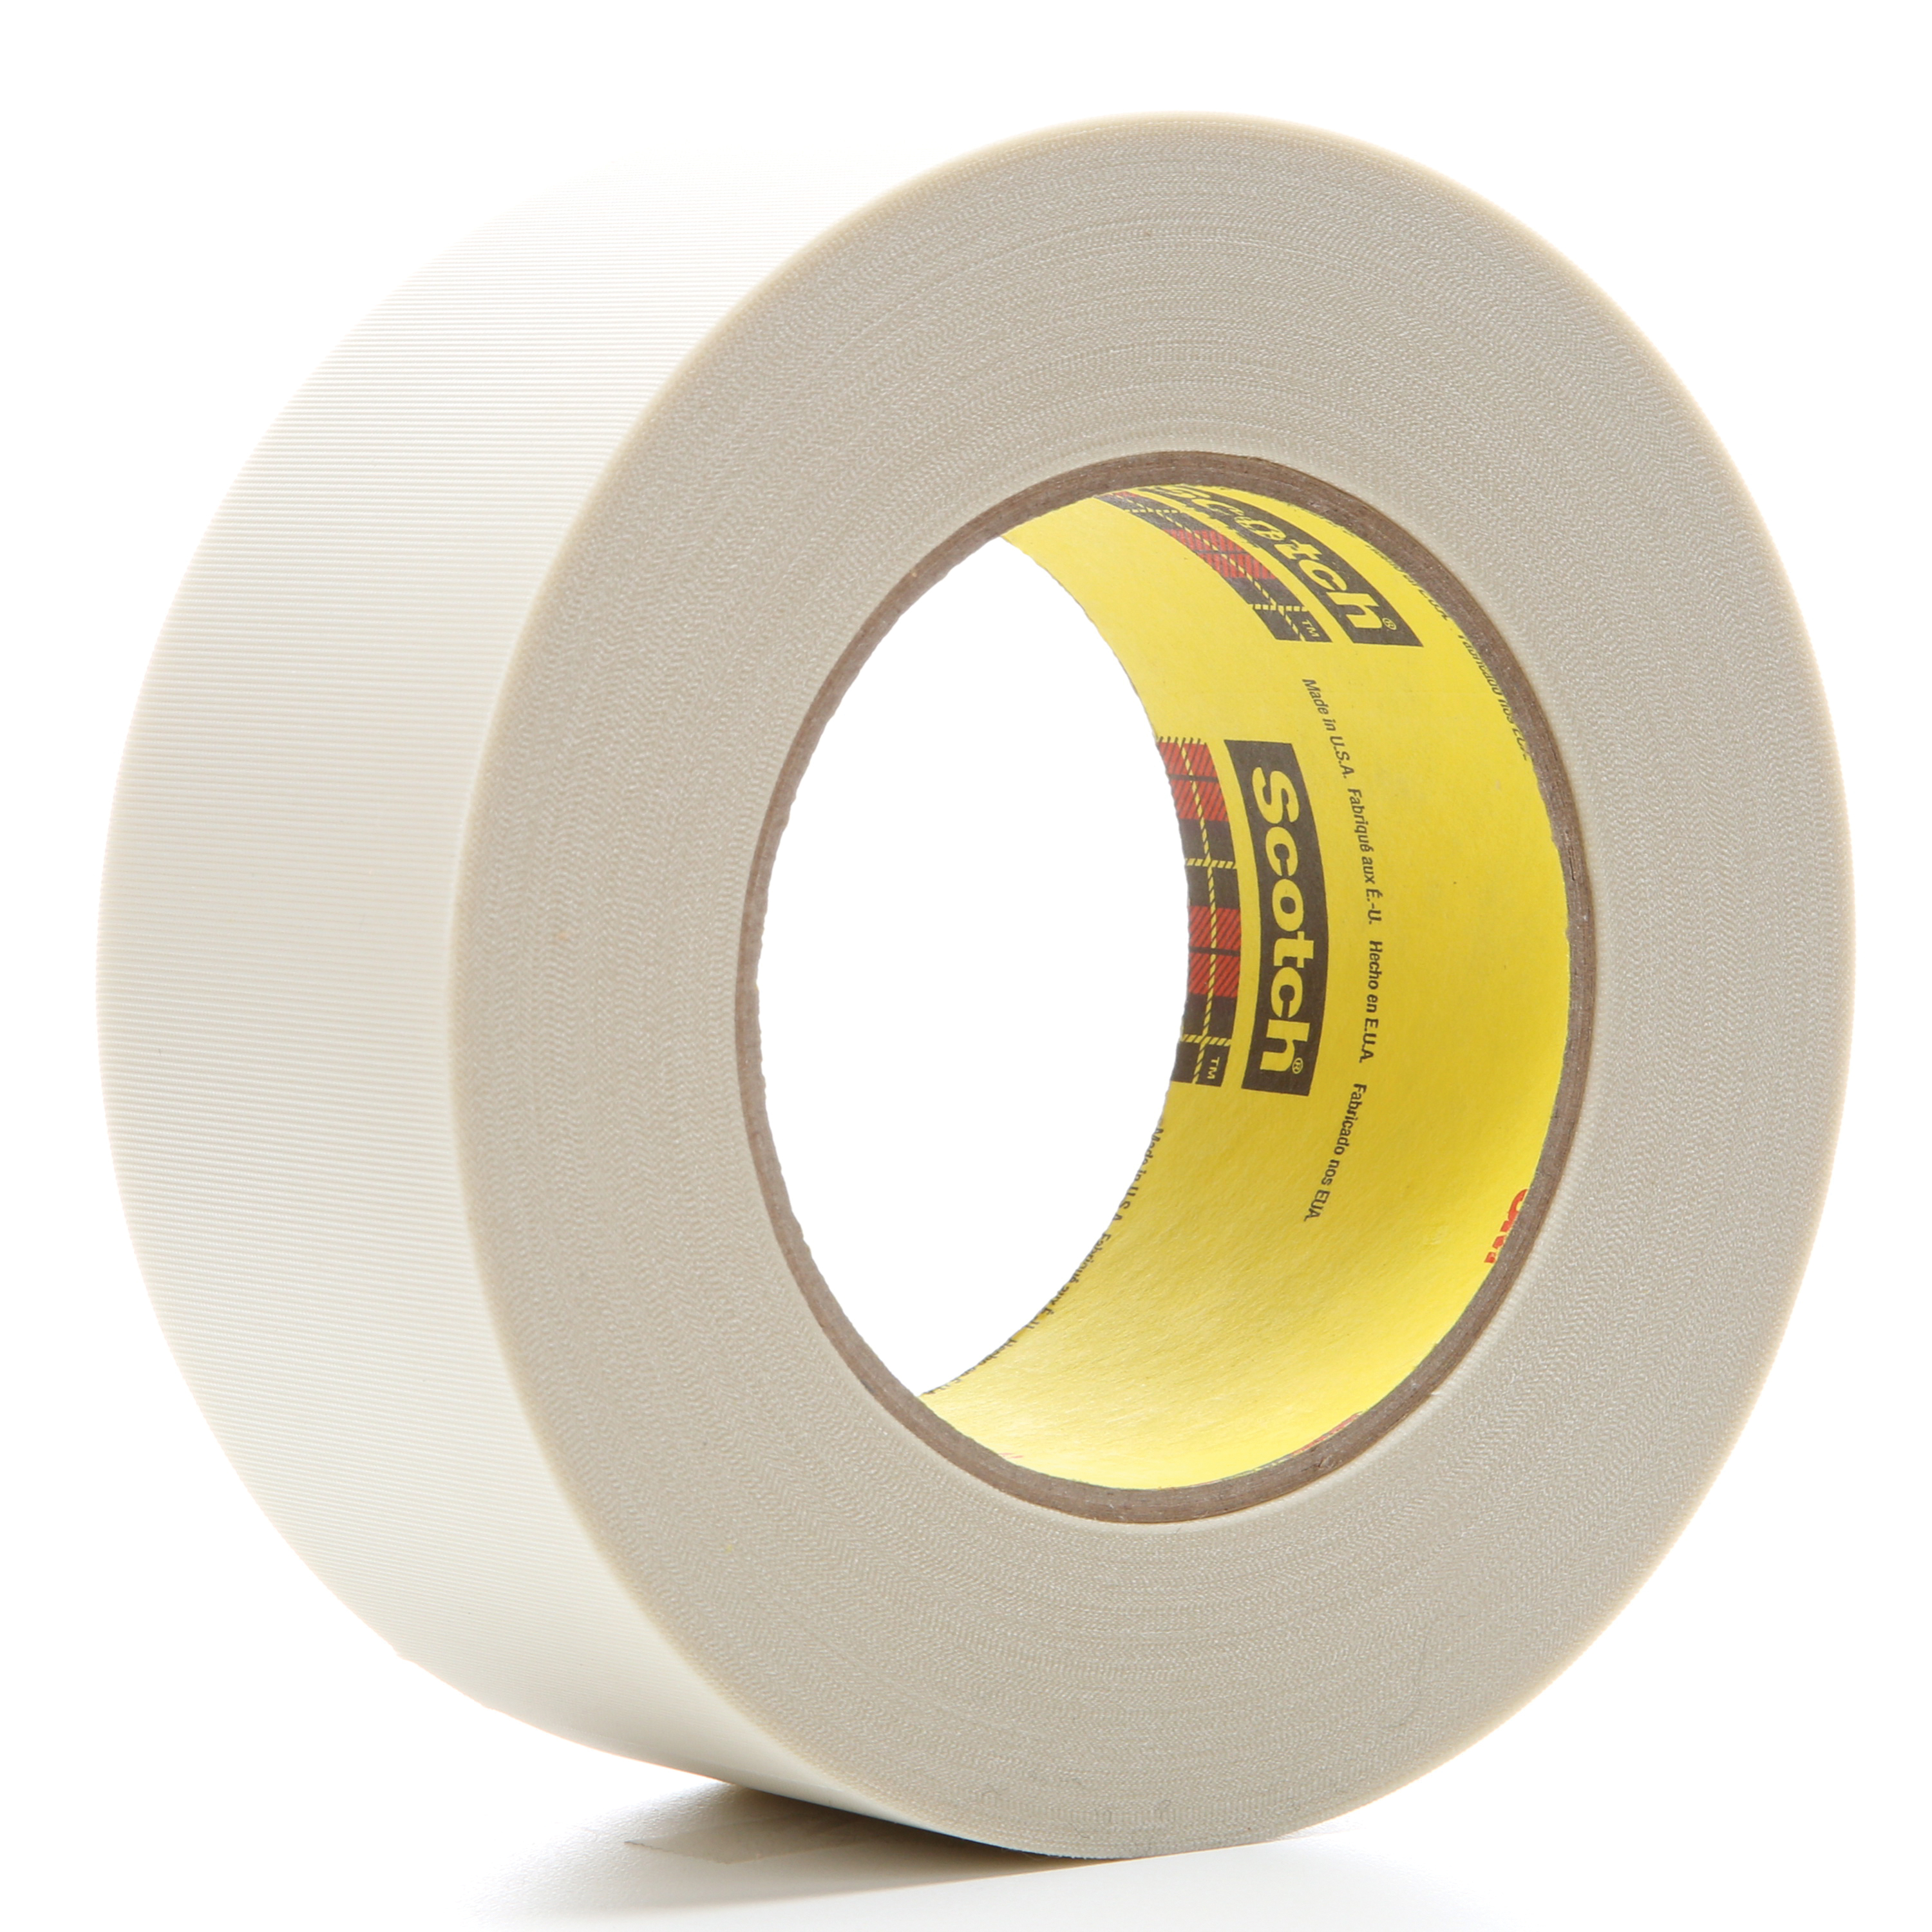 3M™ 021200-04275 Cloth Tape, 60 yd L x 2 in W, 6.4 mil THK, Silicon Adhesive, Glass Cloth Backing, White